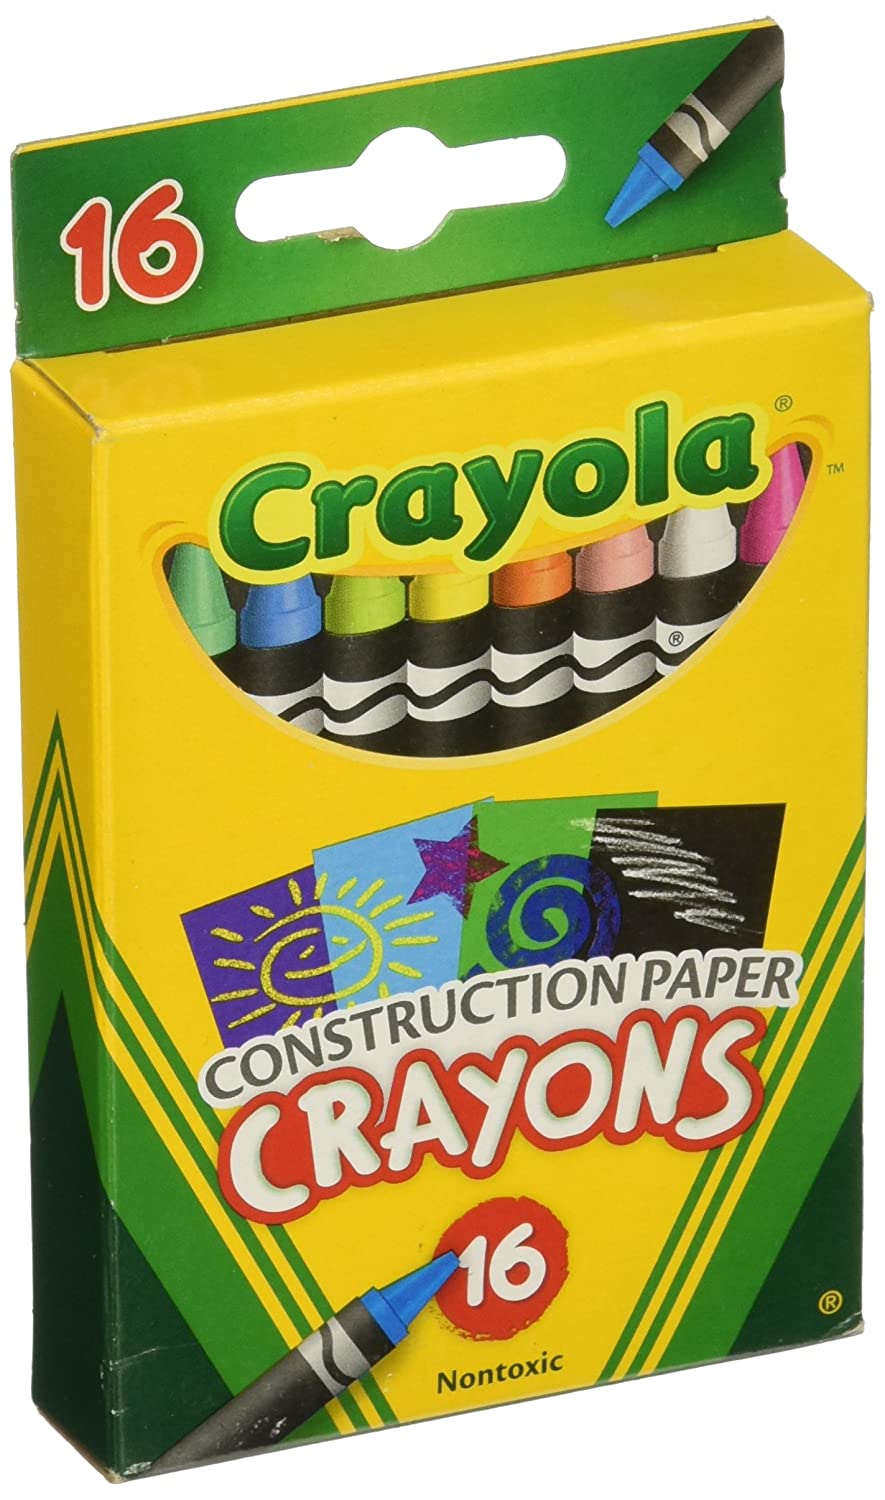 Assorted Colors Crayola Construction Paper Crayons Set of 16 52-5817